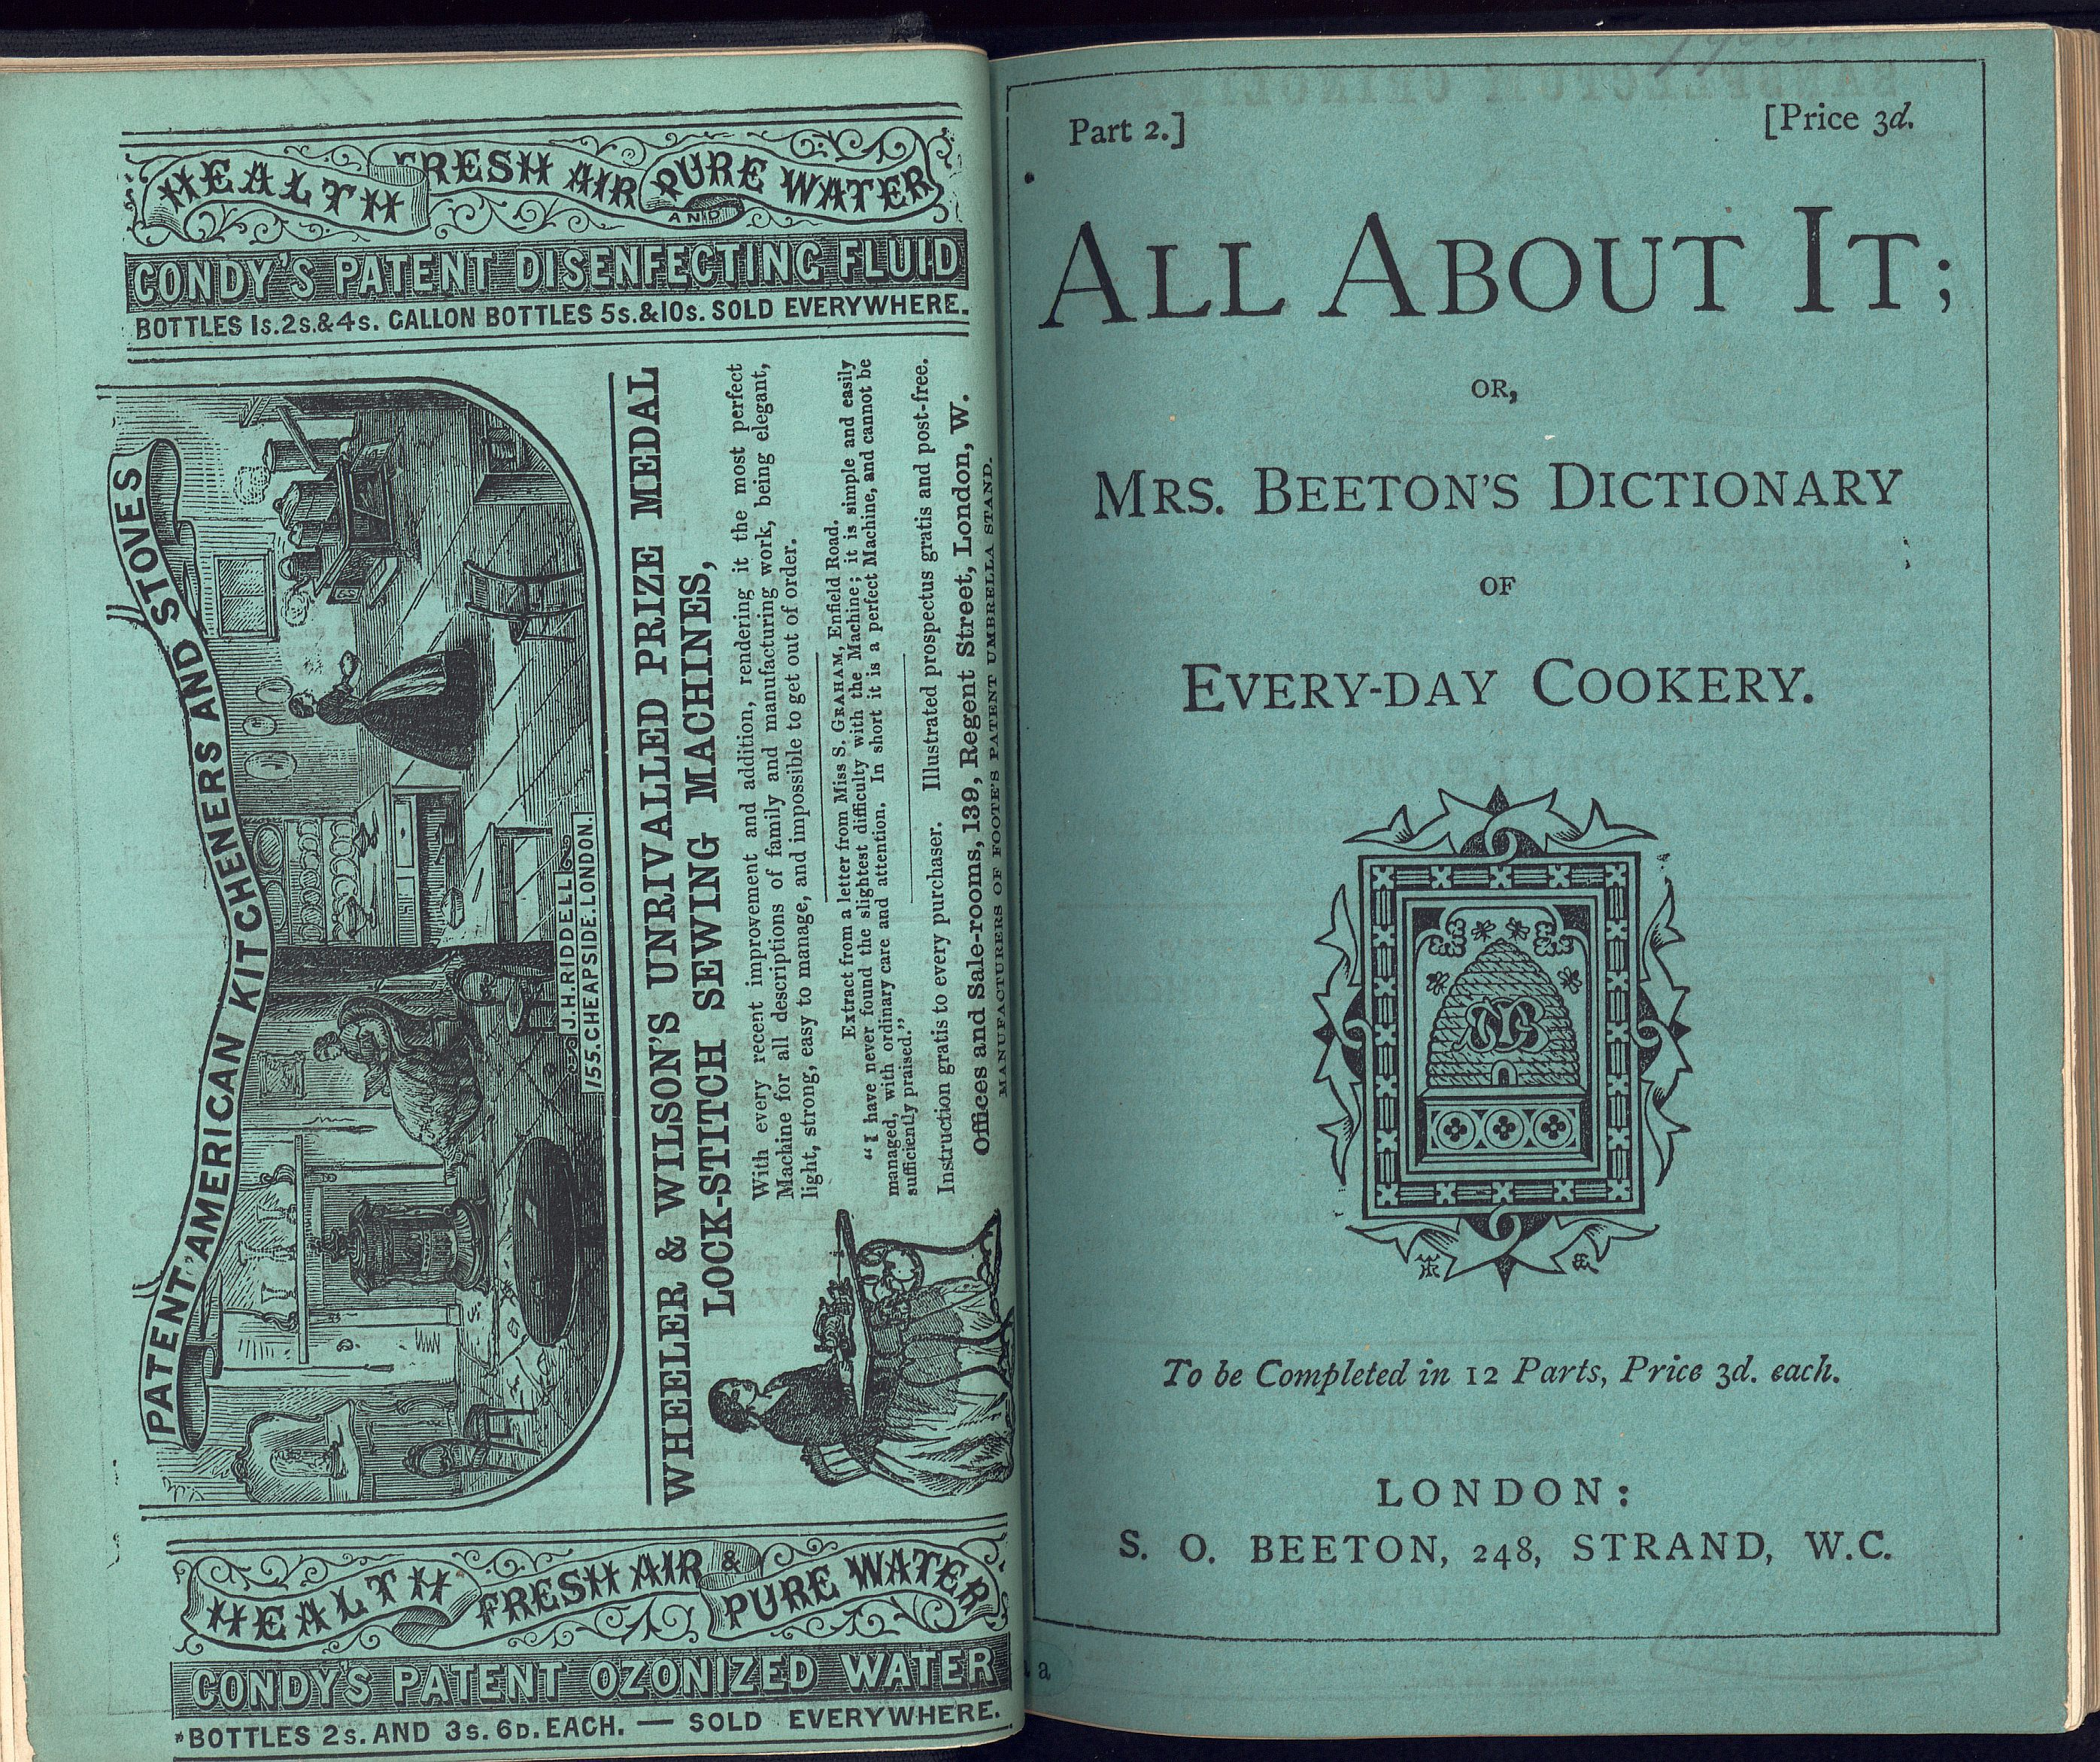 All about it; Mrs. Beeton's Dictionary of Every-Day Cookery. The British Library copy is at shelf mark 12202ee1/1 There are twelve parts in this copy. Each part was issued price 3d. Samuel Beeton's rebus, is on the front cover of each part, and  it was drawn by William Harry Rogers, whose monogram is on the left hand corner. This picture shows the lower cover verso of part 1 and the upper cover recto of part 2.